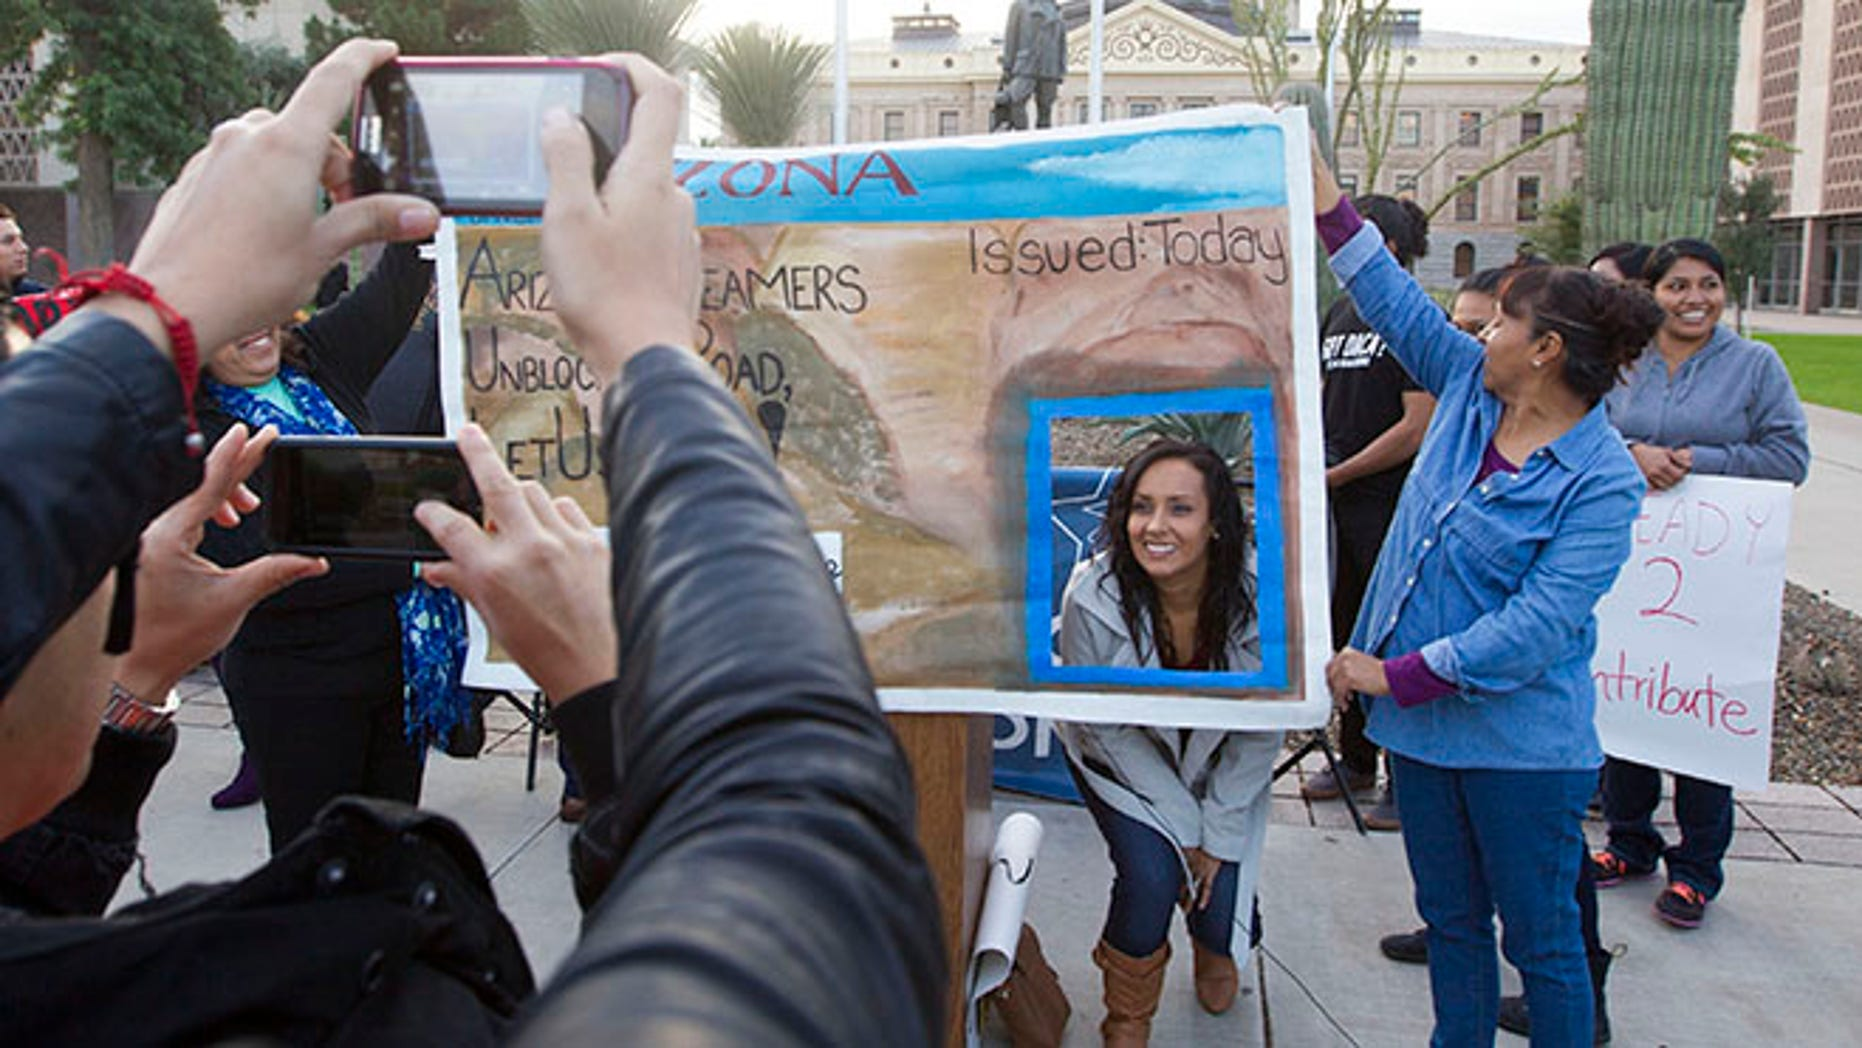 FILE - In this Dec 17, 2014, file photo, Erika Andiola gets her photo taken at the Arizona State Capitol in Phoenix, as thousands of young immigrants moved a step closer to getting driver's licenses in Arizona. A single mother battling cancer and a victim of domestic abuse are among the immigrants who qualify for Arizona driver's licenses but have been illegally denied the chance to drive a car, a group of advocacy organizations said in a new federal lawsuit. Denying licenses to some immigrants in the country illegally who have been granted deferred action, or protection from deportation, is unconstitutional, according to the claim filed Monday, Sept. 12, 2016 by the Mexican American Legal Defense and Educational Fund, the National Immigration Law Center and the Ortega Law Firm.(Nick Oza  /The Arizona Republic via AP, File)